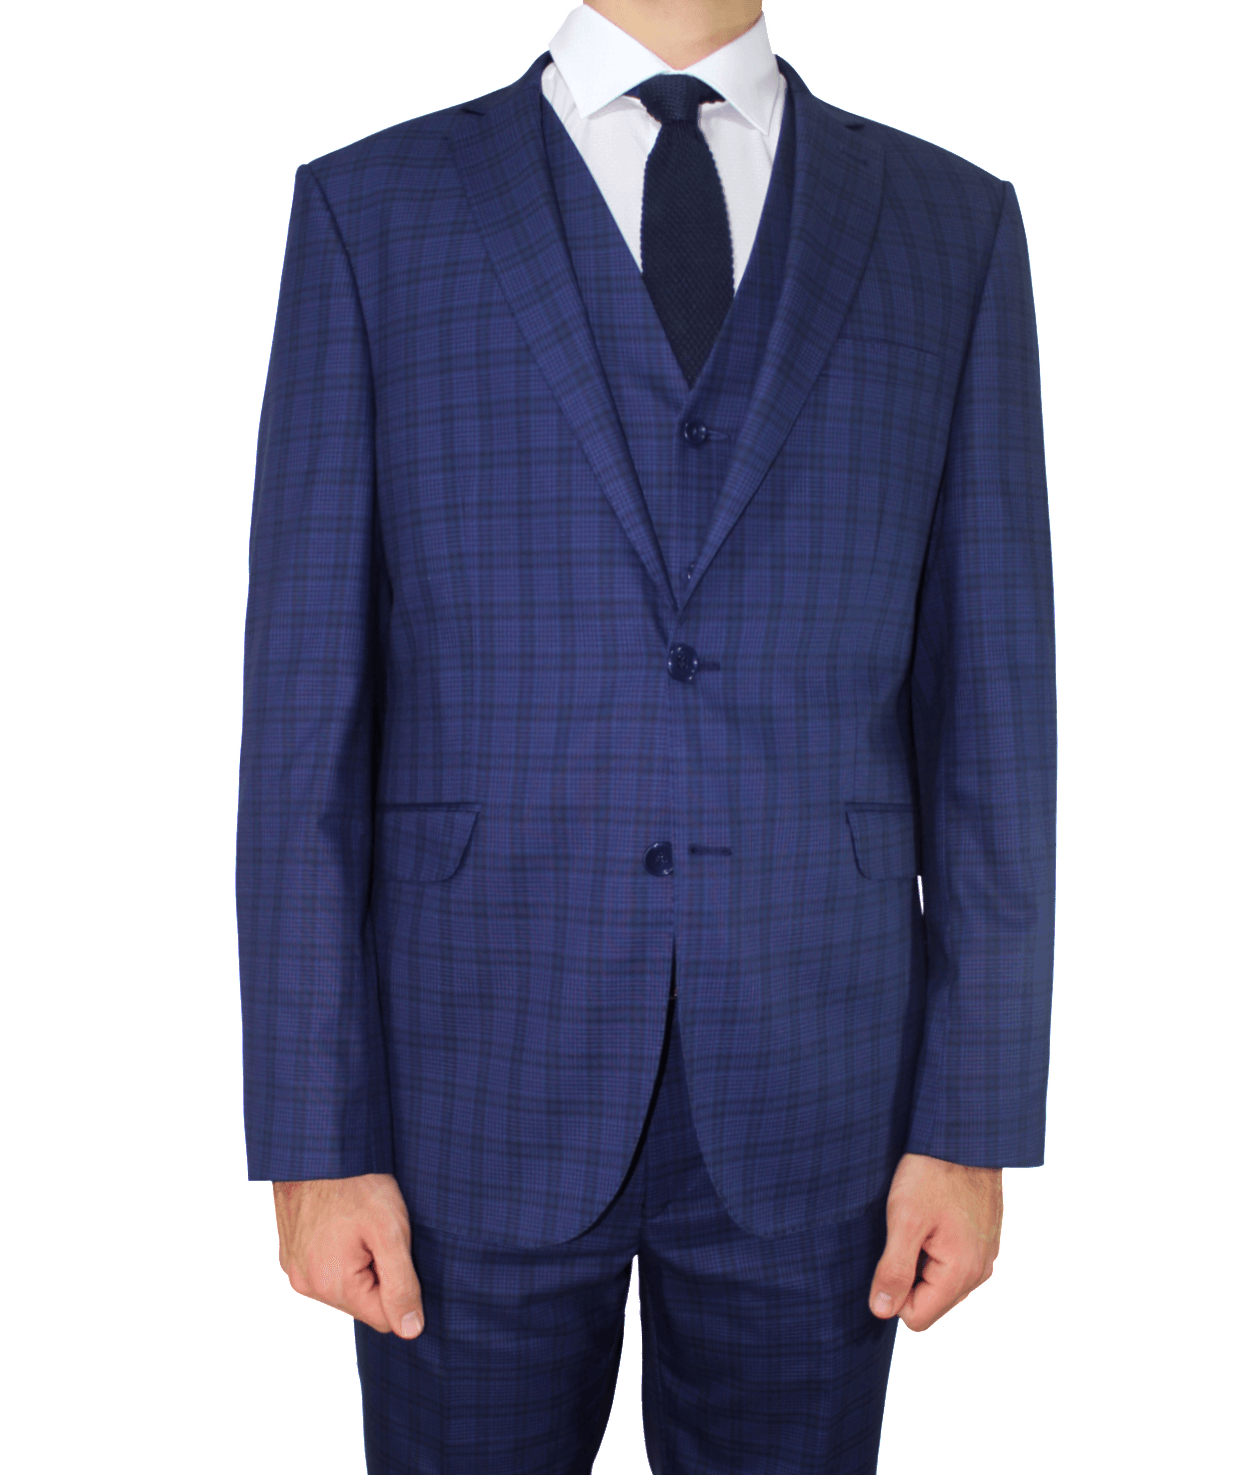 Find and save ideas about Blue suit men on Pinterest. | See more ideas about Mens suits style, Modern mens suits for weddings and Mens classic blue suit. Slaters Menswear the UK's Number 1 for Mens Suits Online. Designer, Three Piece, Slim Fit and Wedding Suits available.